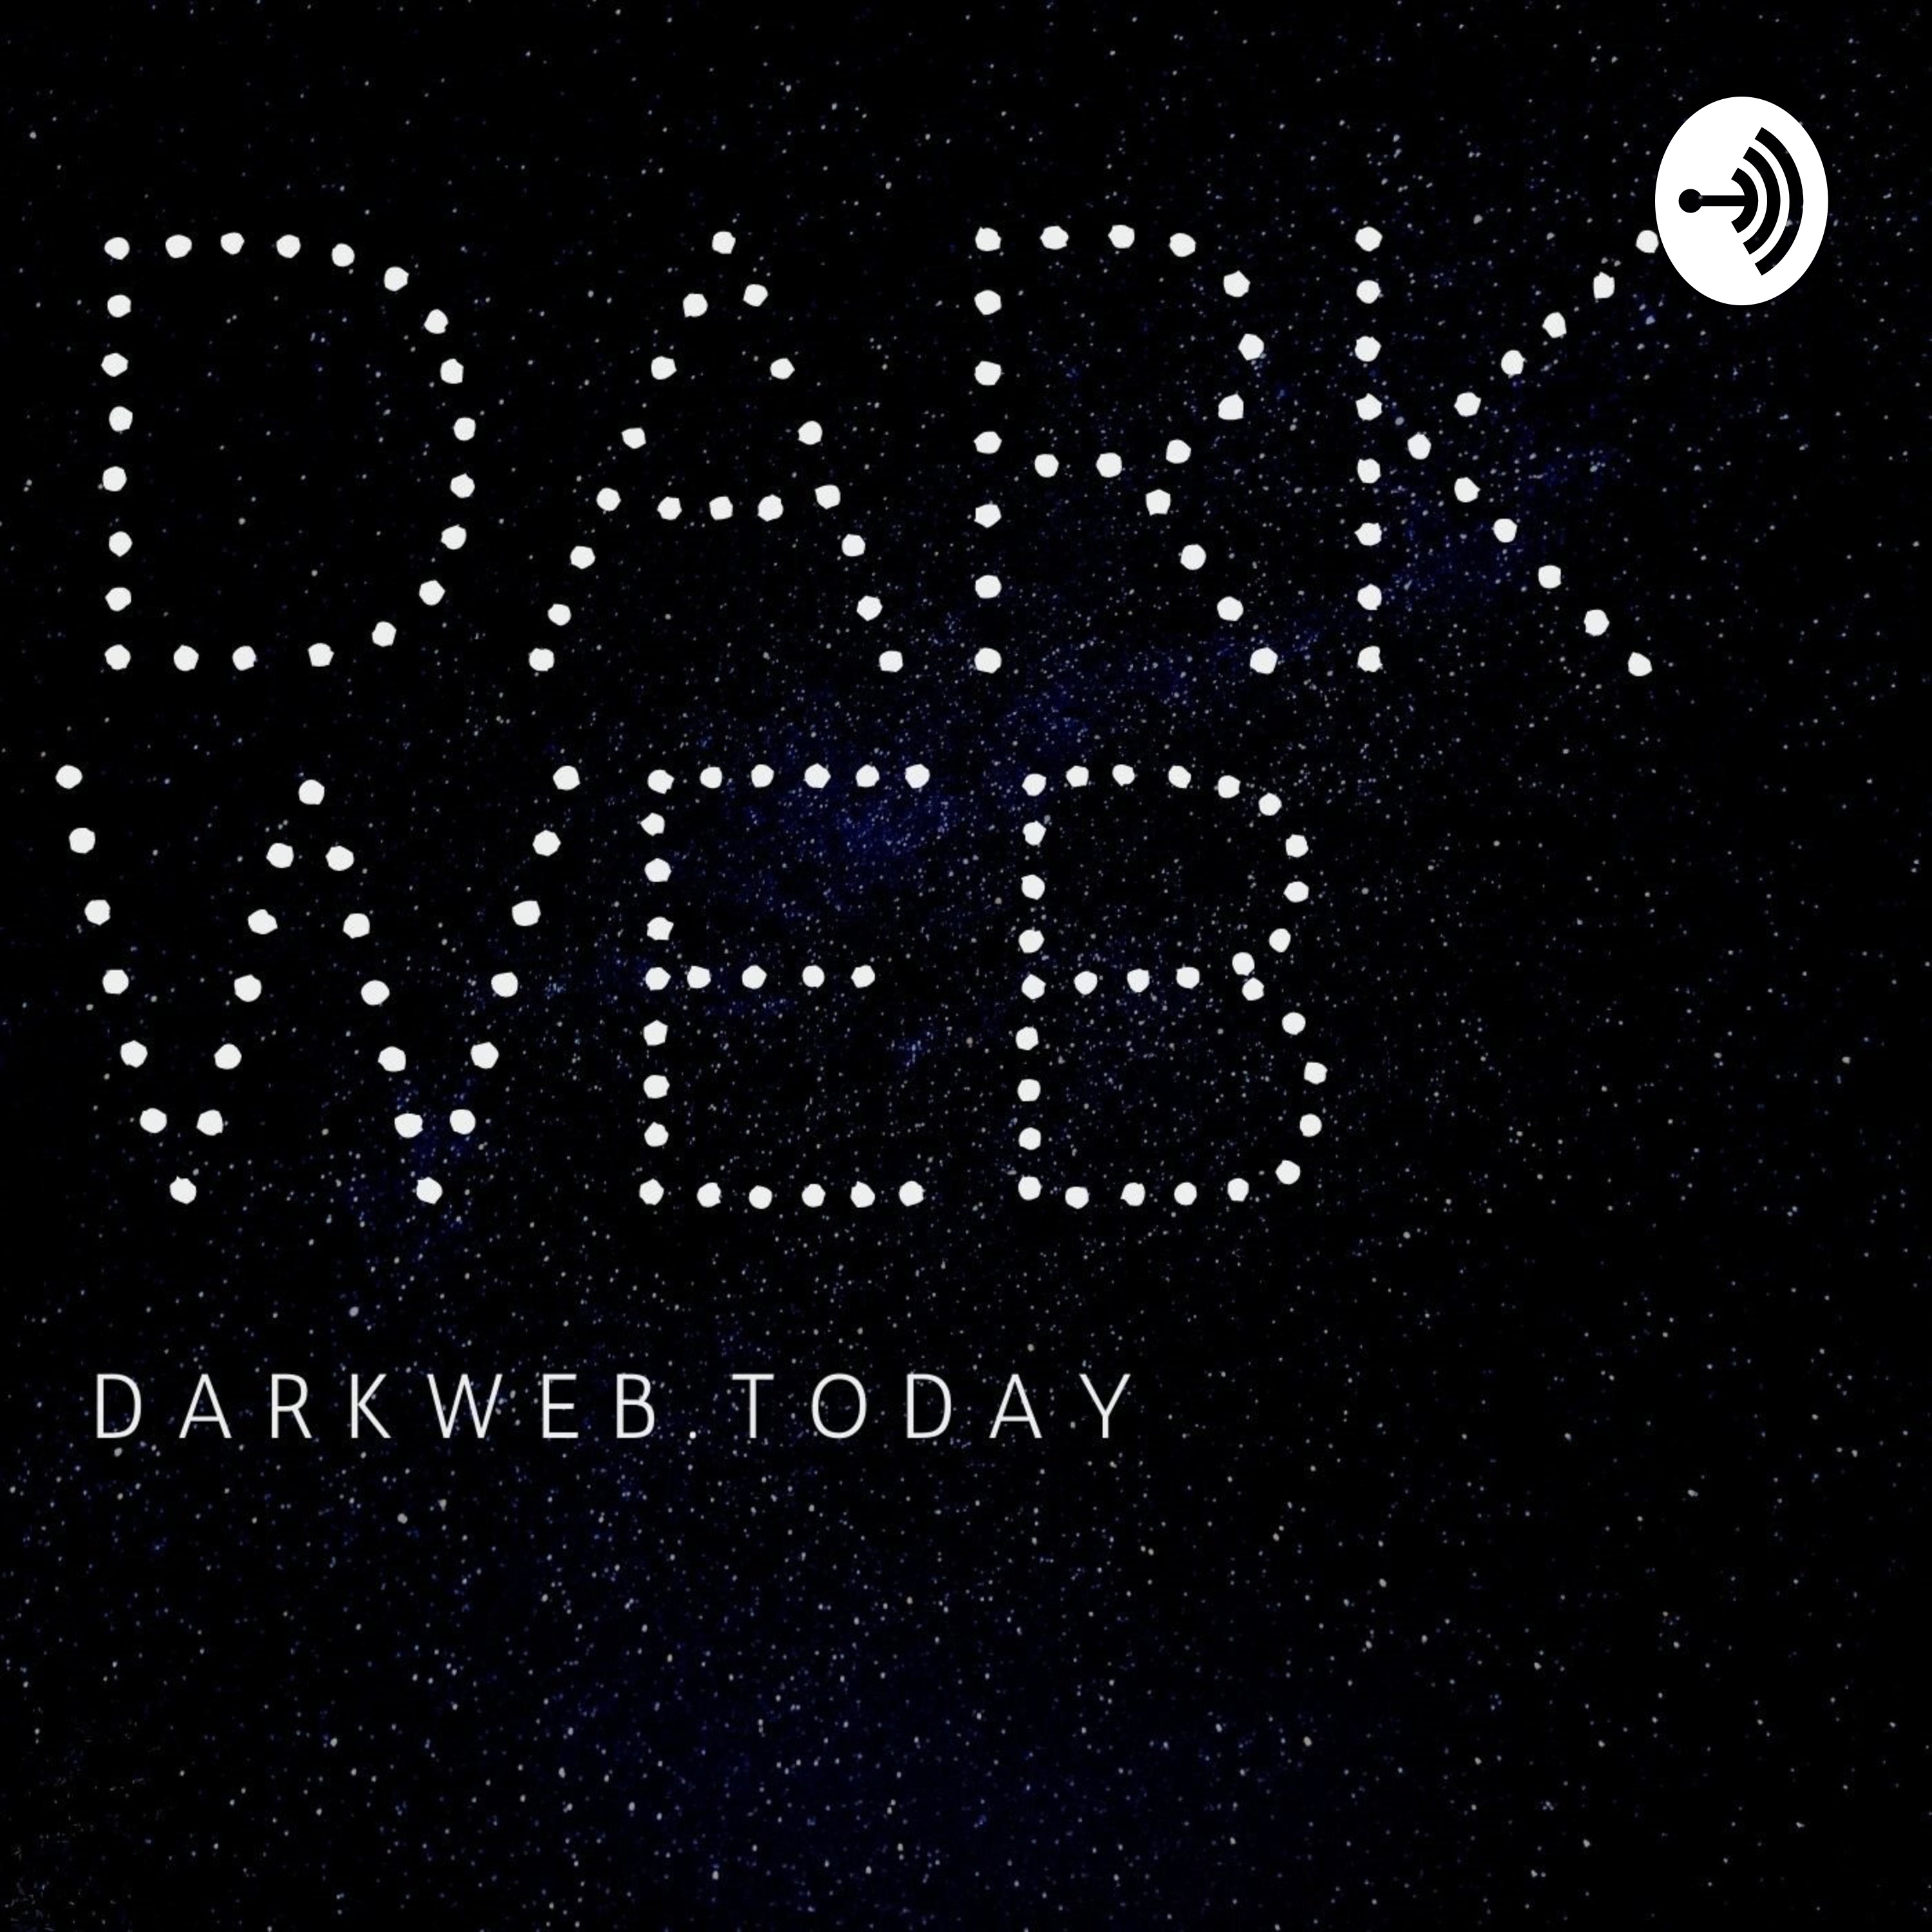 DARKWEB TODAY - By the first hacker that served time in prison in Uruguay for a computer crime.